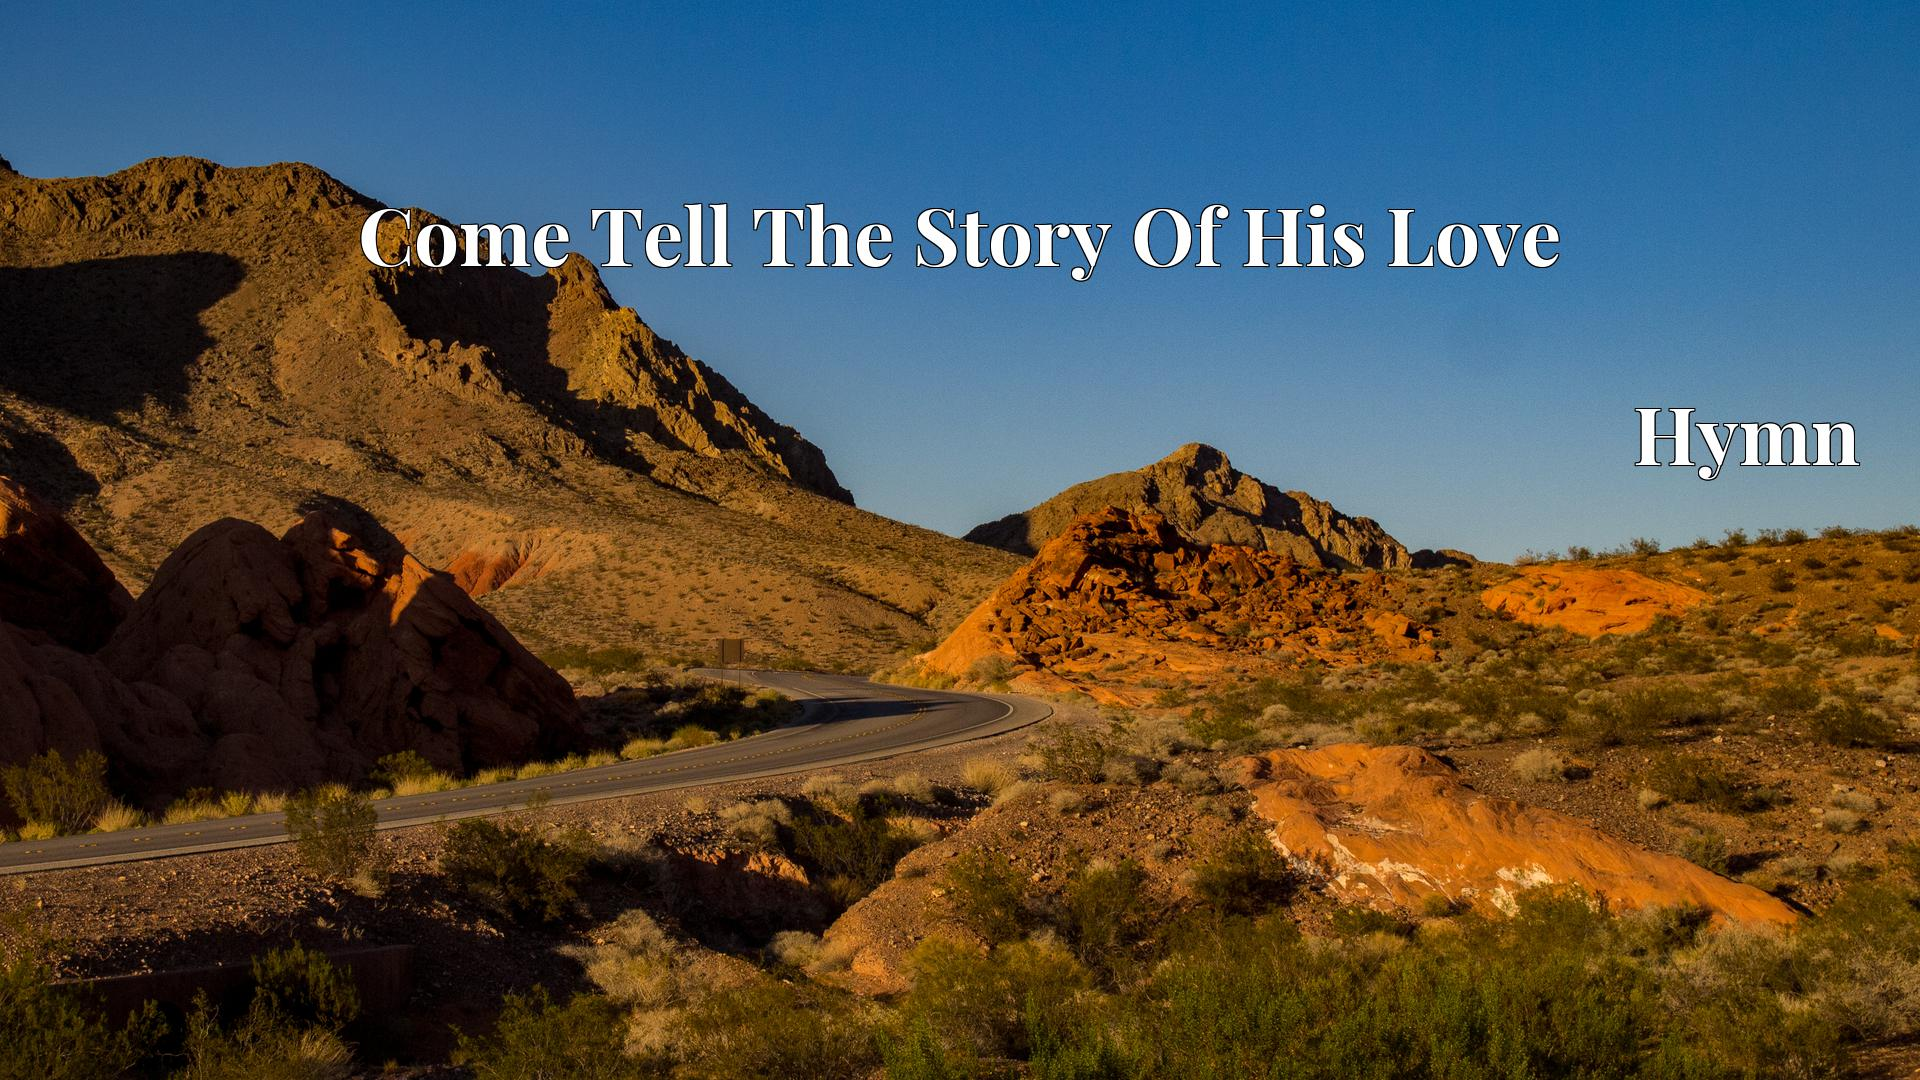 Come Tell The Story Of His Love - Hymn